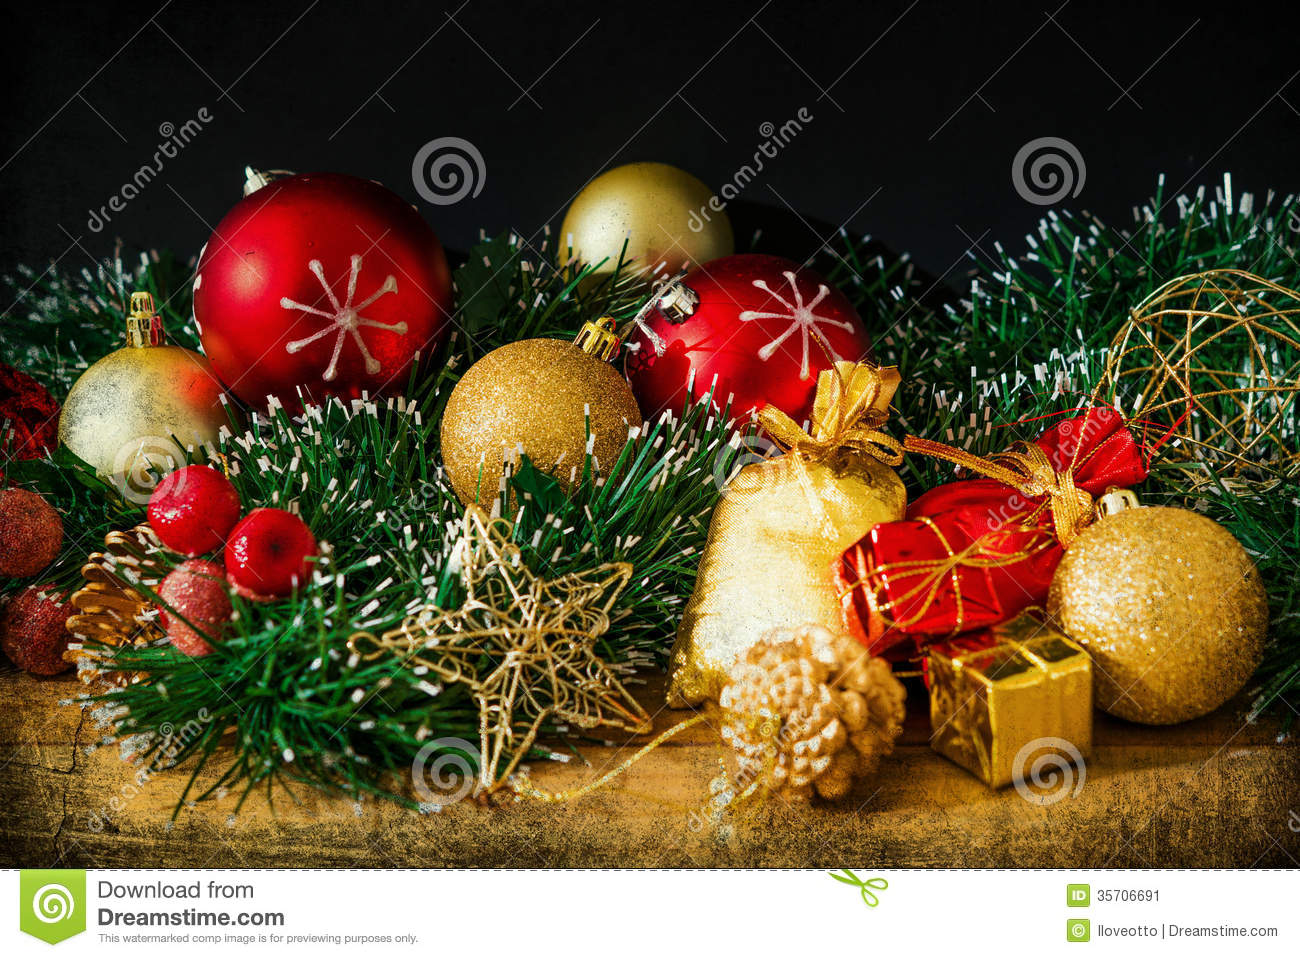 download old fashioned christmas decoration stock image image of light plant 35706691